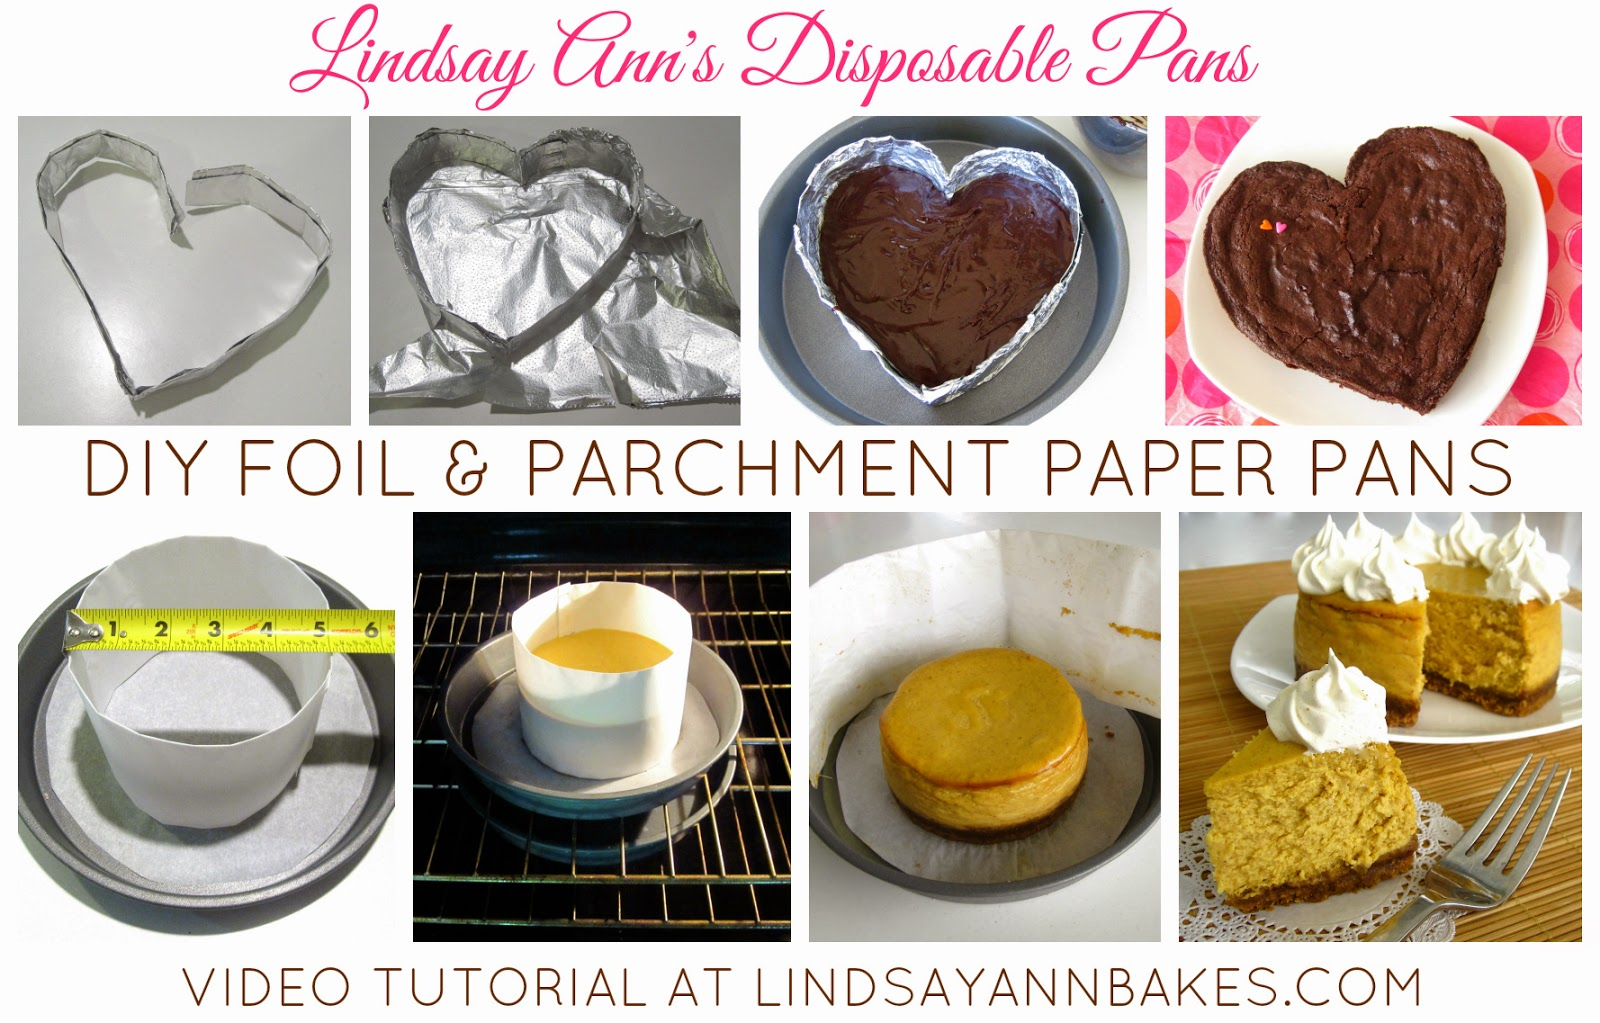 Video Diy Disposable Baking Pans Heart Shaped Foil Pans